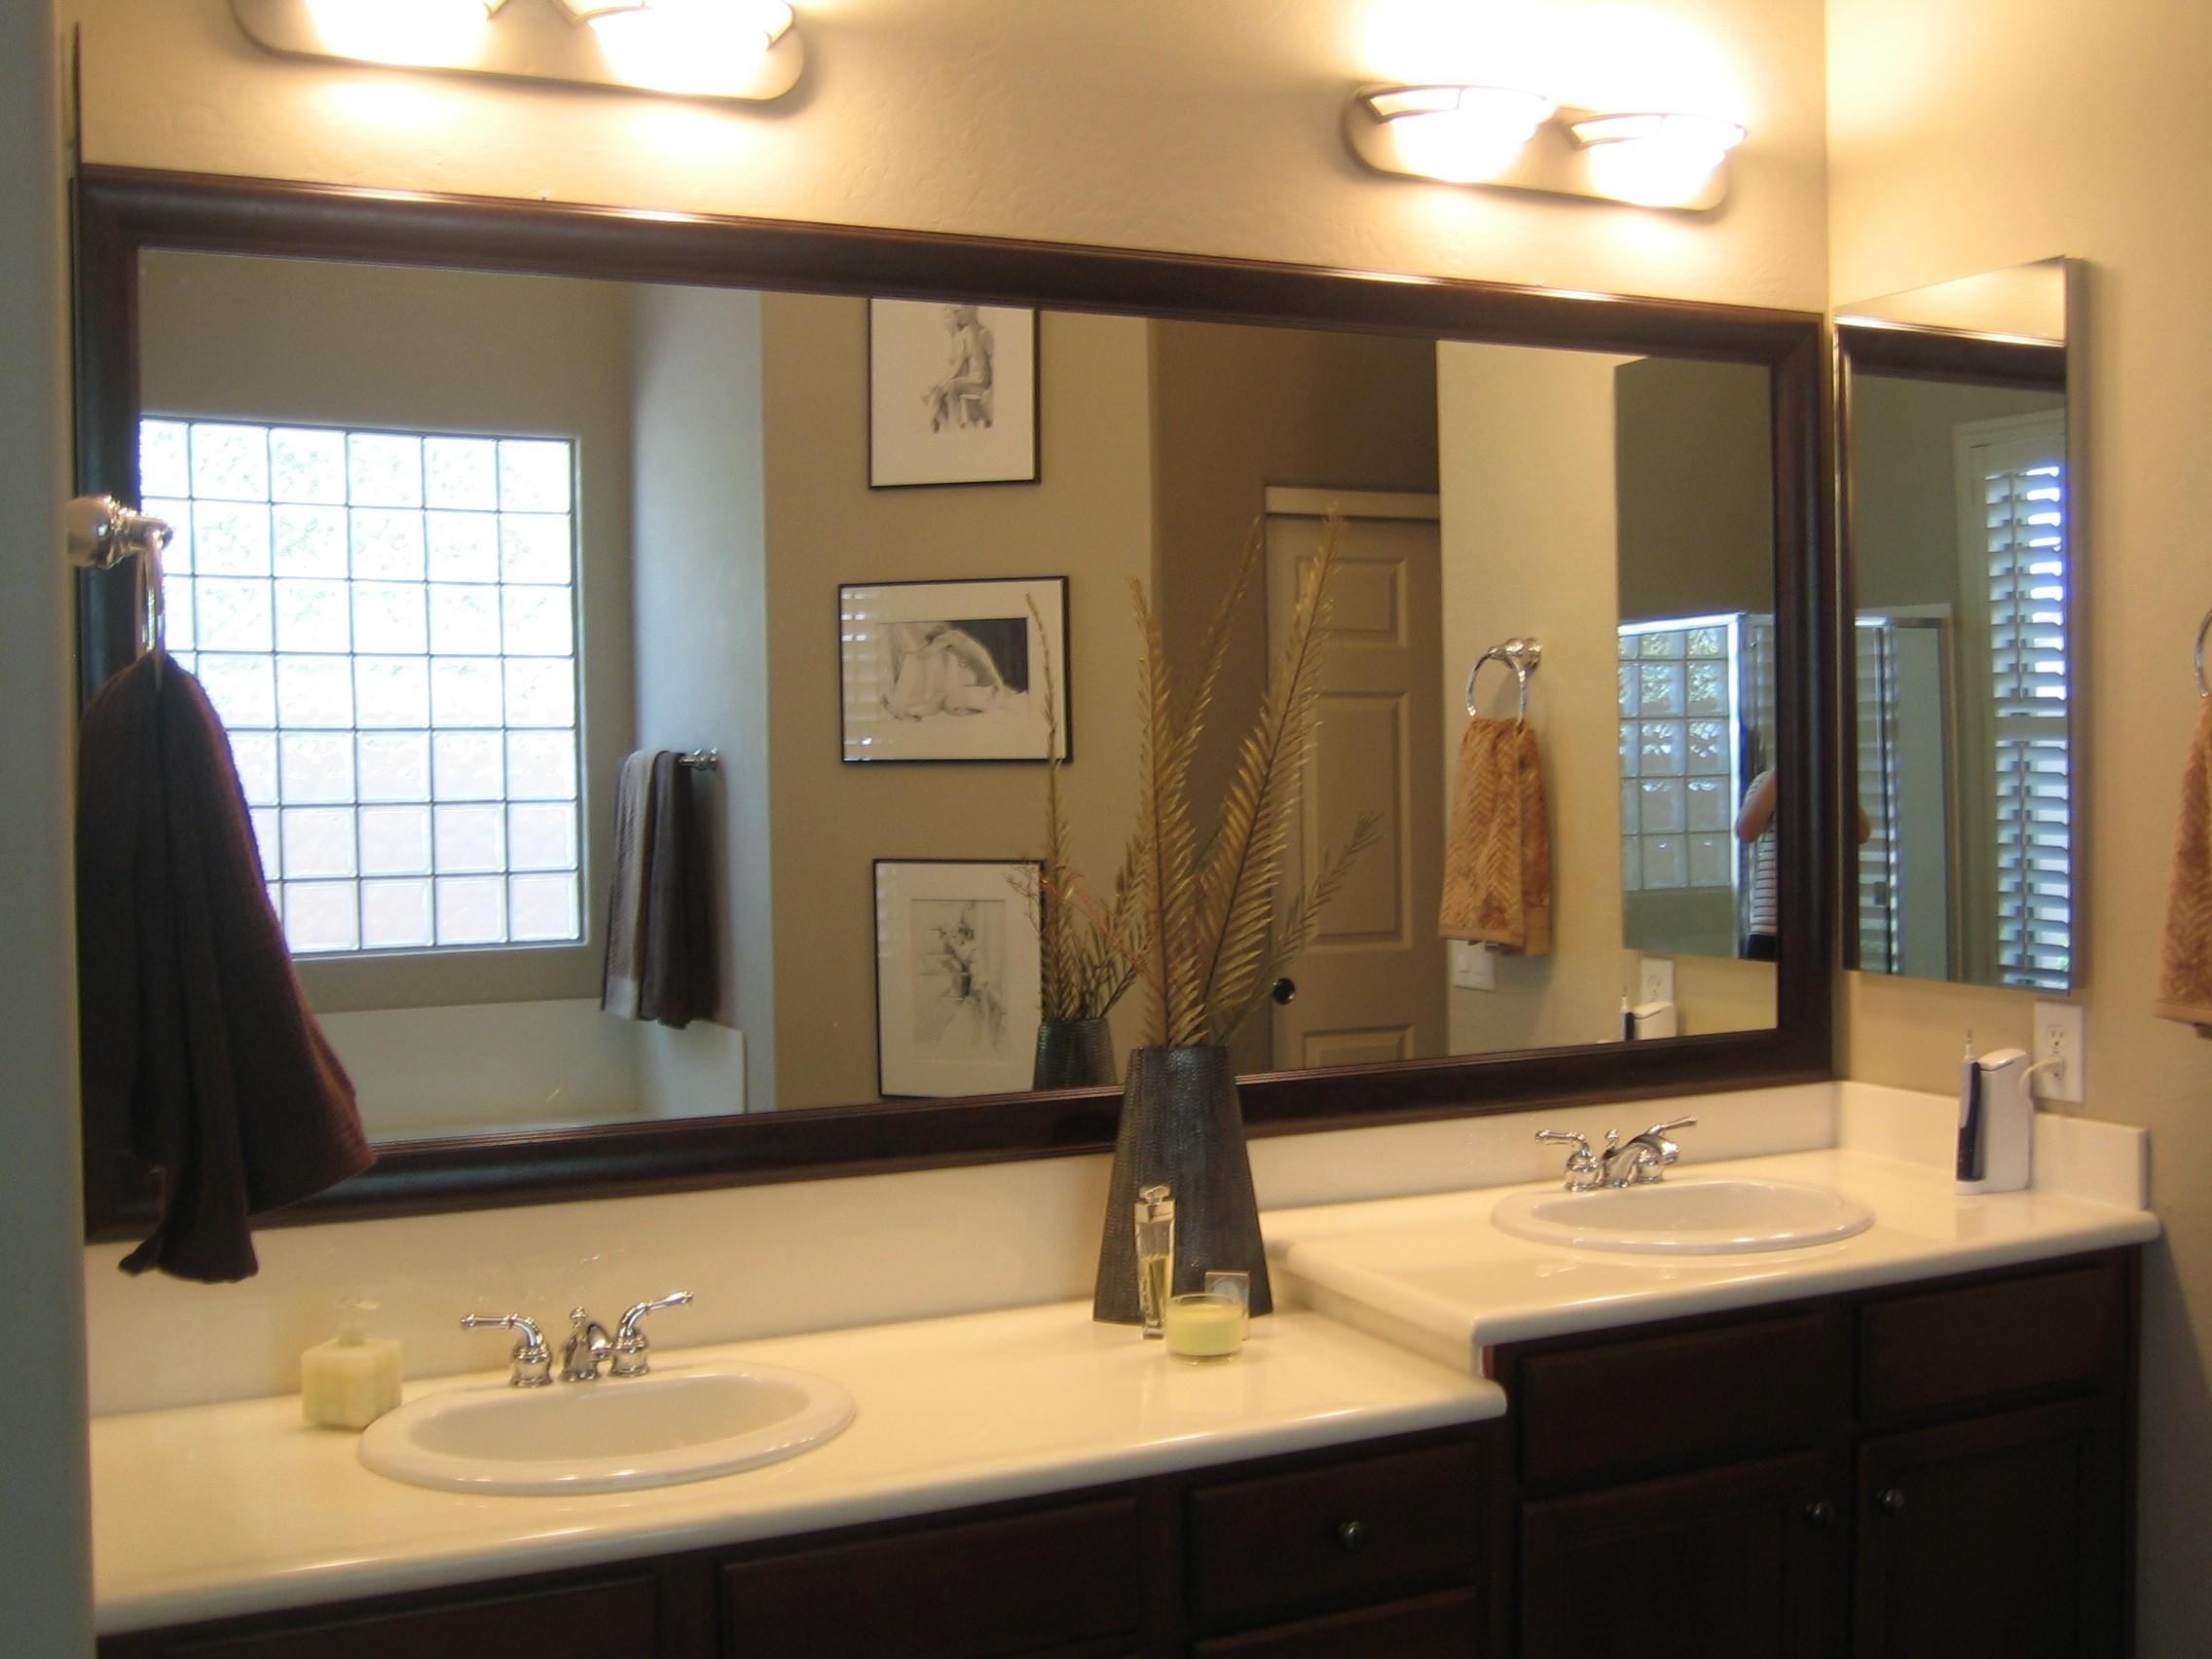 Bathroom : Superb George Kovacs Led Bathroom Lighting Crystal Pertaining To Bathroom Lighting And Mirrors (Image 3 of 20)